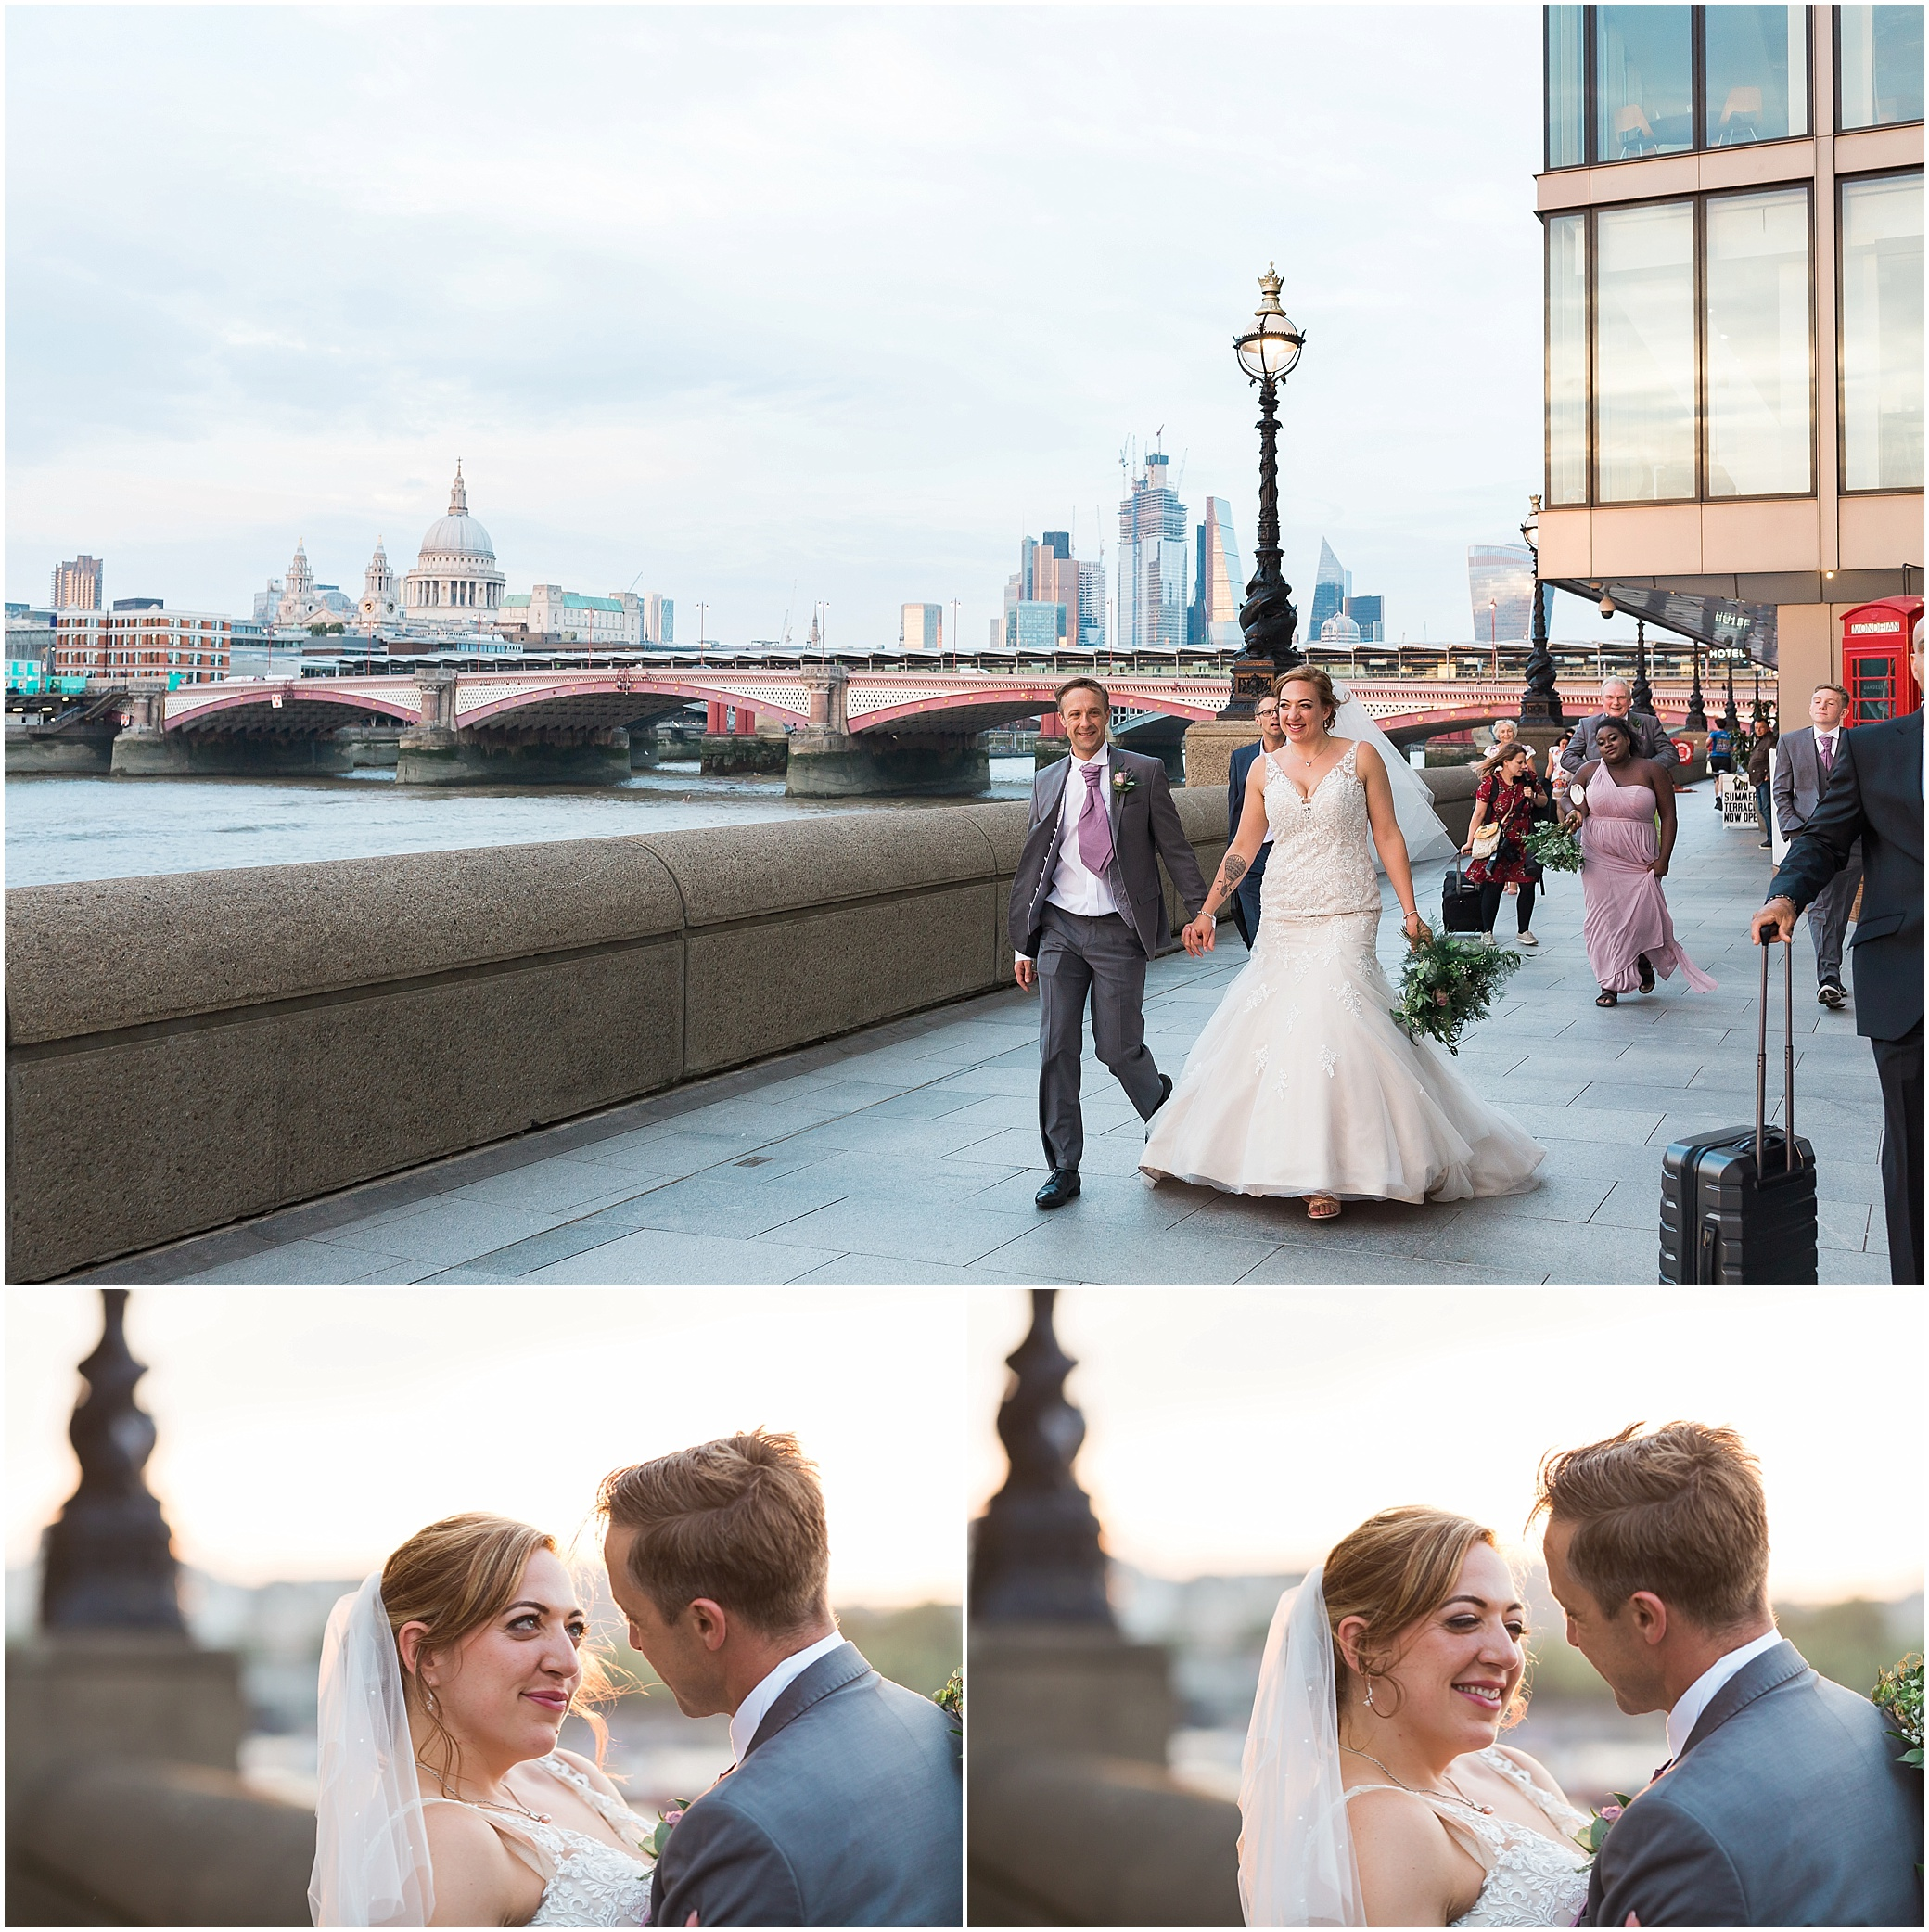 Bride and groom walking along the Southbank in London after their Shakespeare's Globe wedding